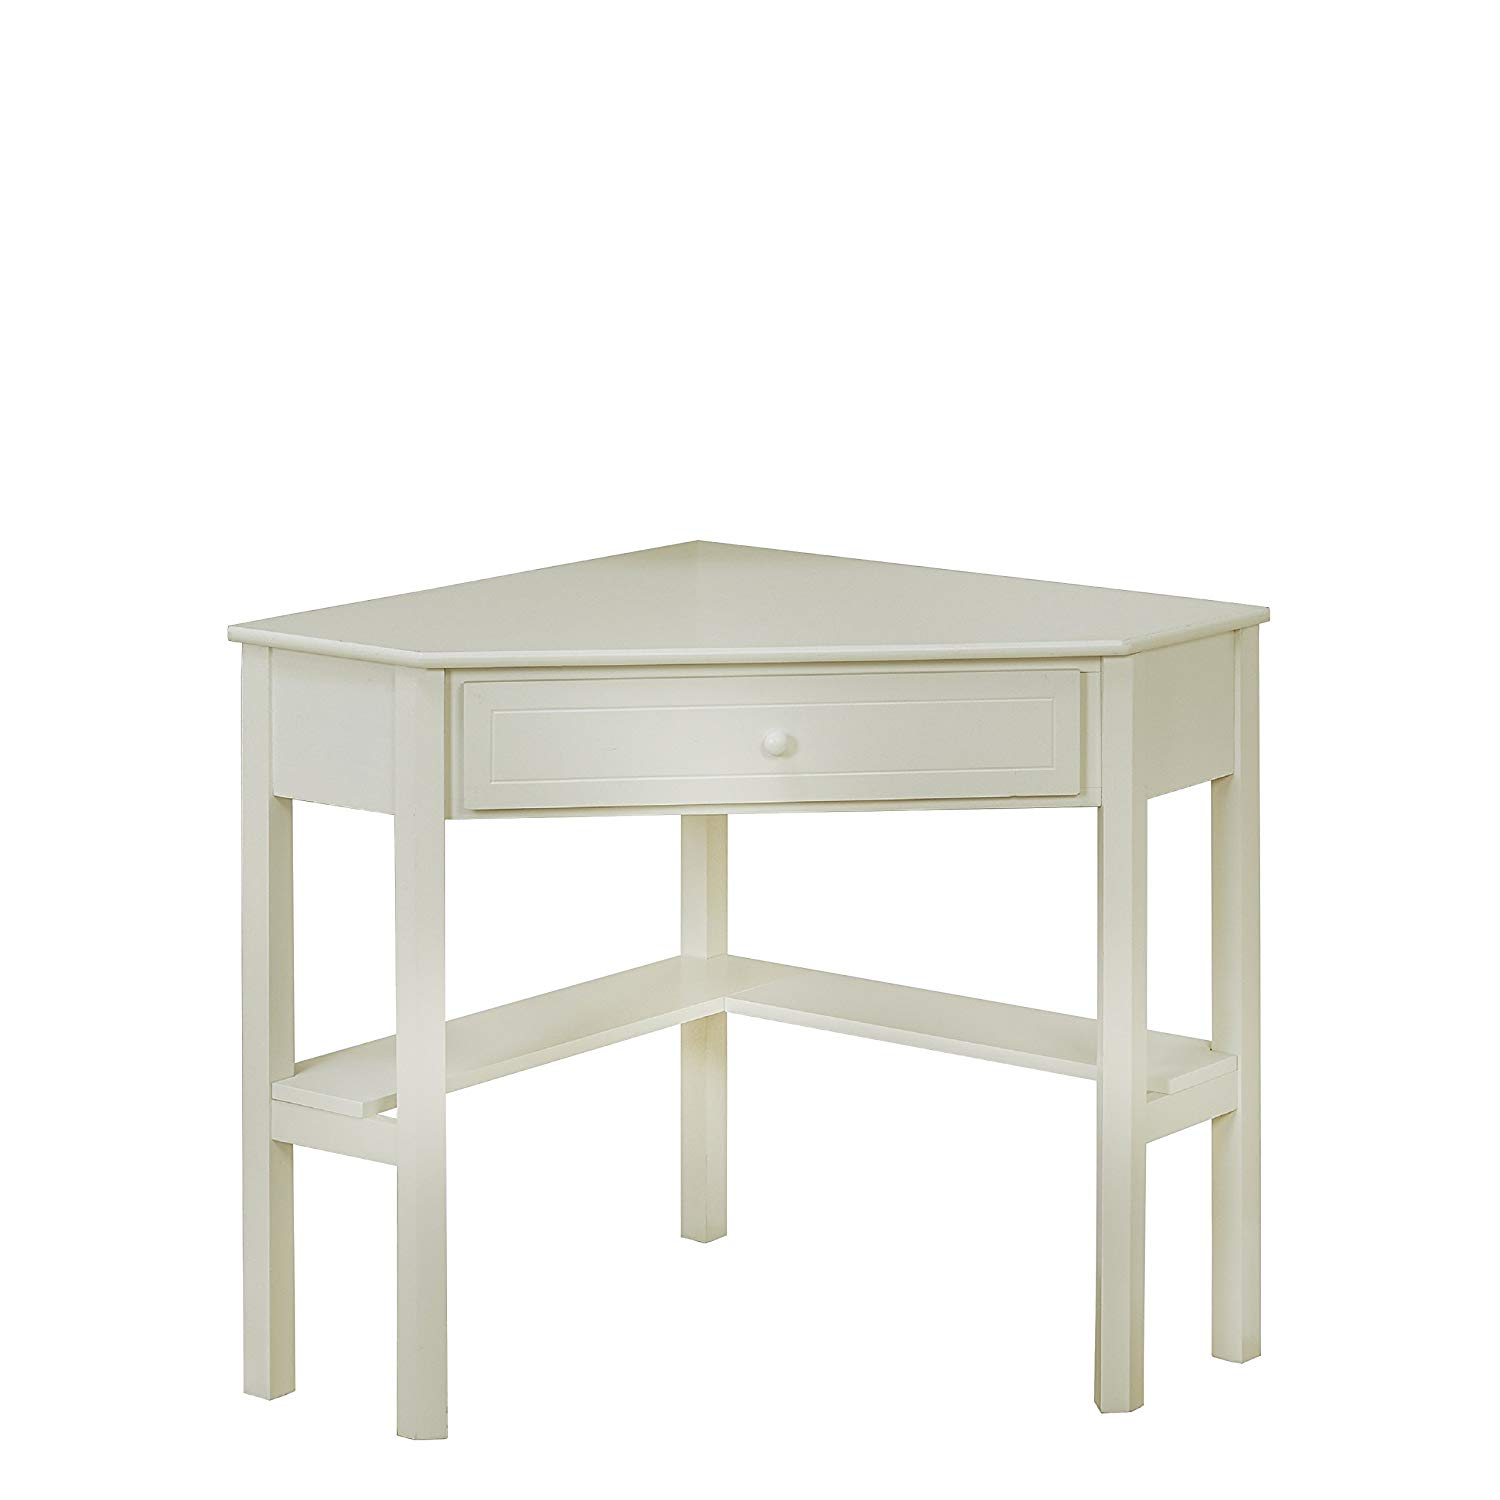 target marketing systems wood corner desk with one uujol accent table drawer and storage shelf antique white finish kitchen dining marble door threshold narrow foyer reclaimed